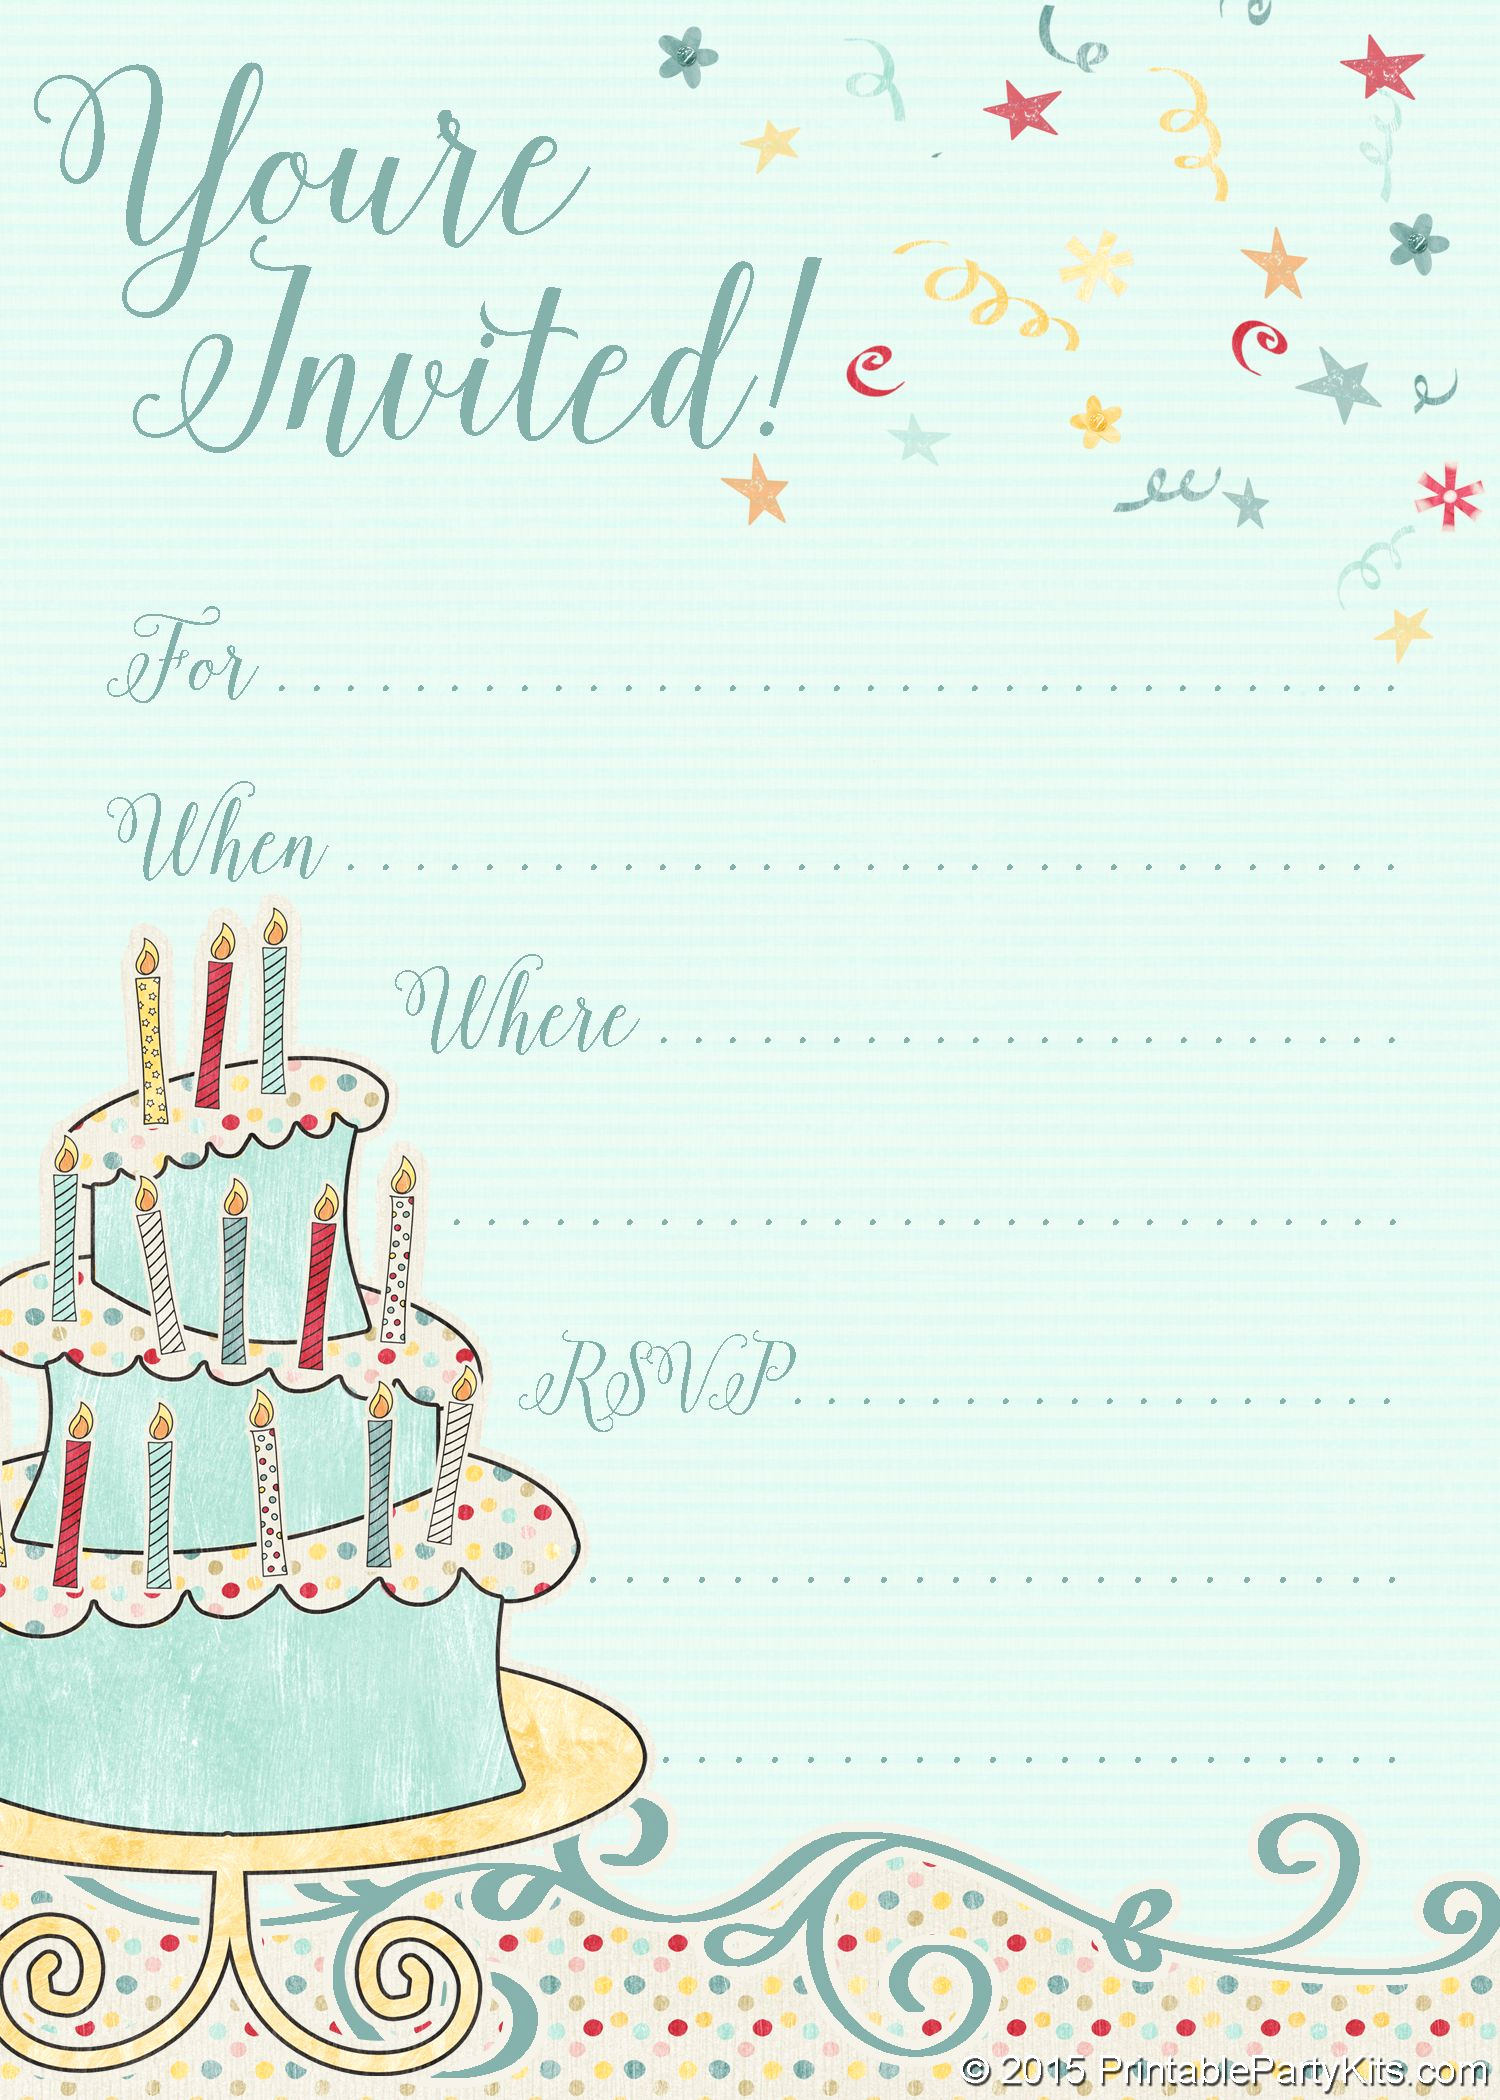 Birthday Party Invitation Template Beautiful Free Printable Whimsical Birthday Party Invitation